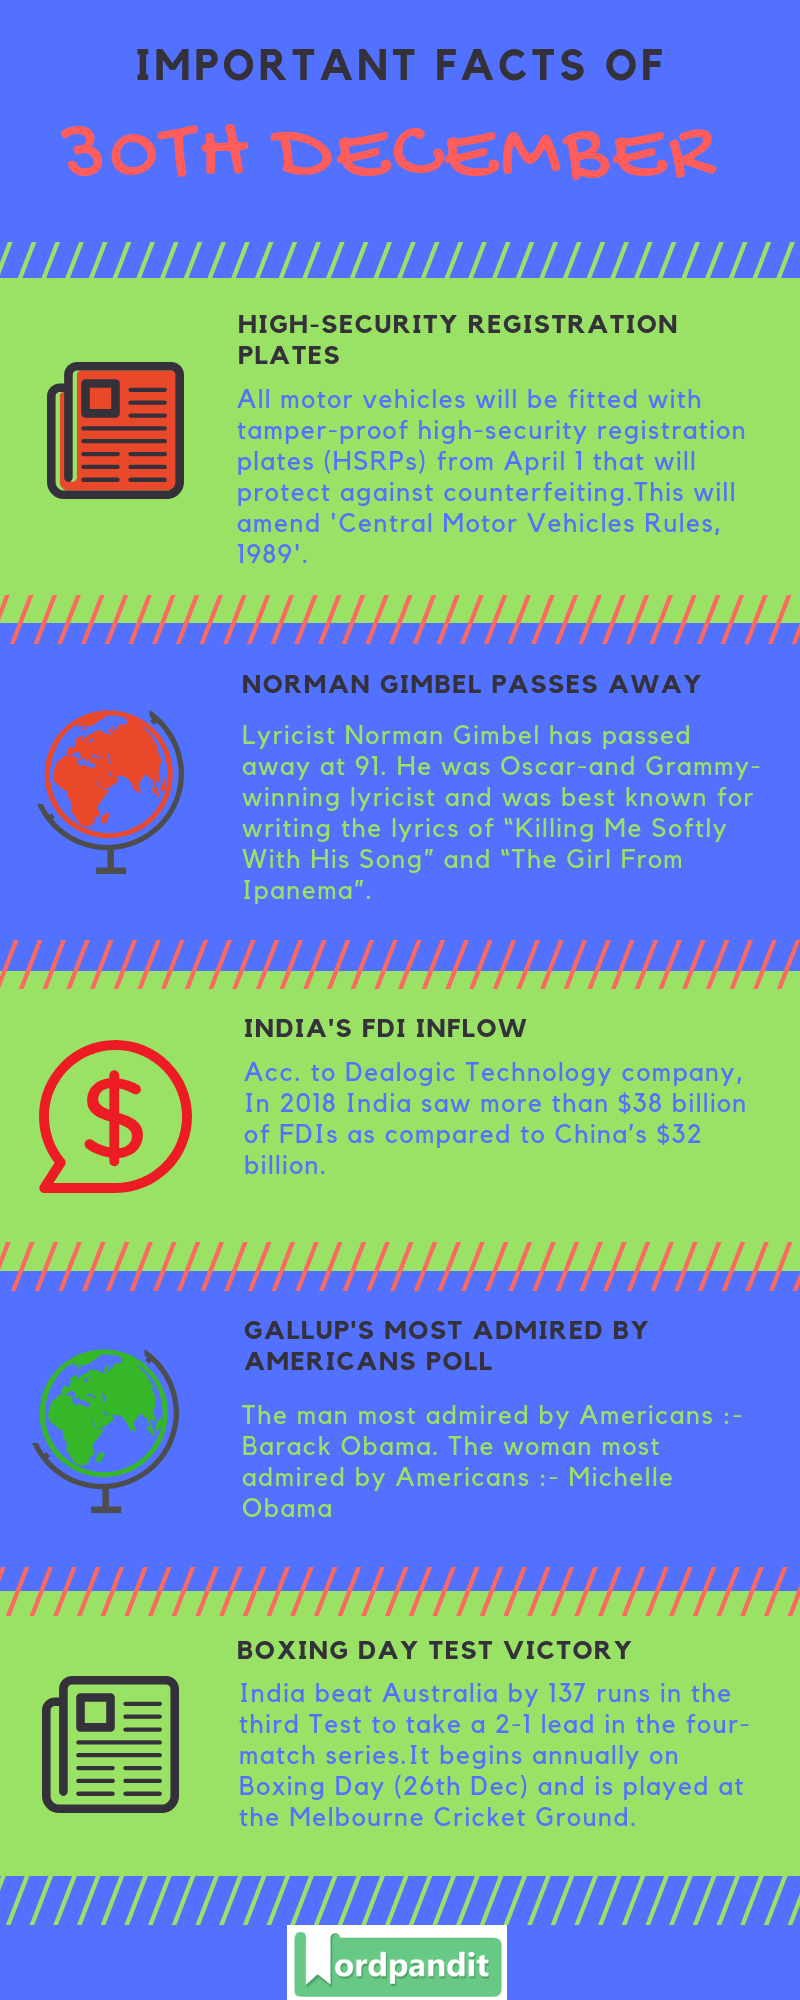 Daily Current Affairs 30 December 2018 Current Affairs Quiz 30 December 2018 Current Affairs Infographic